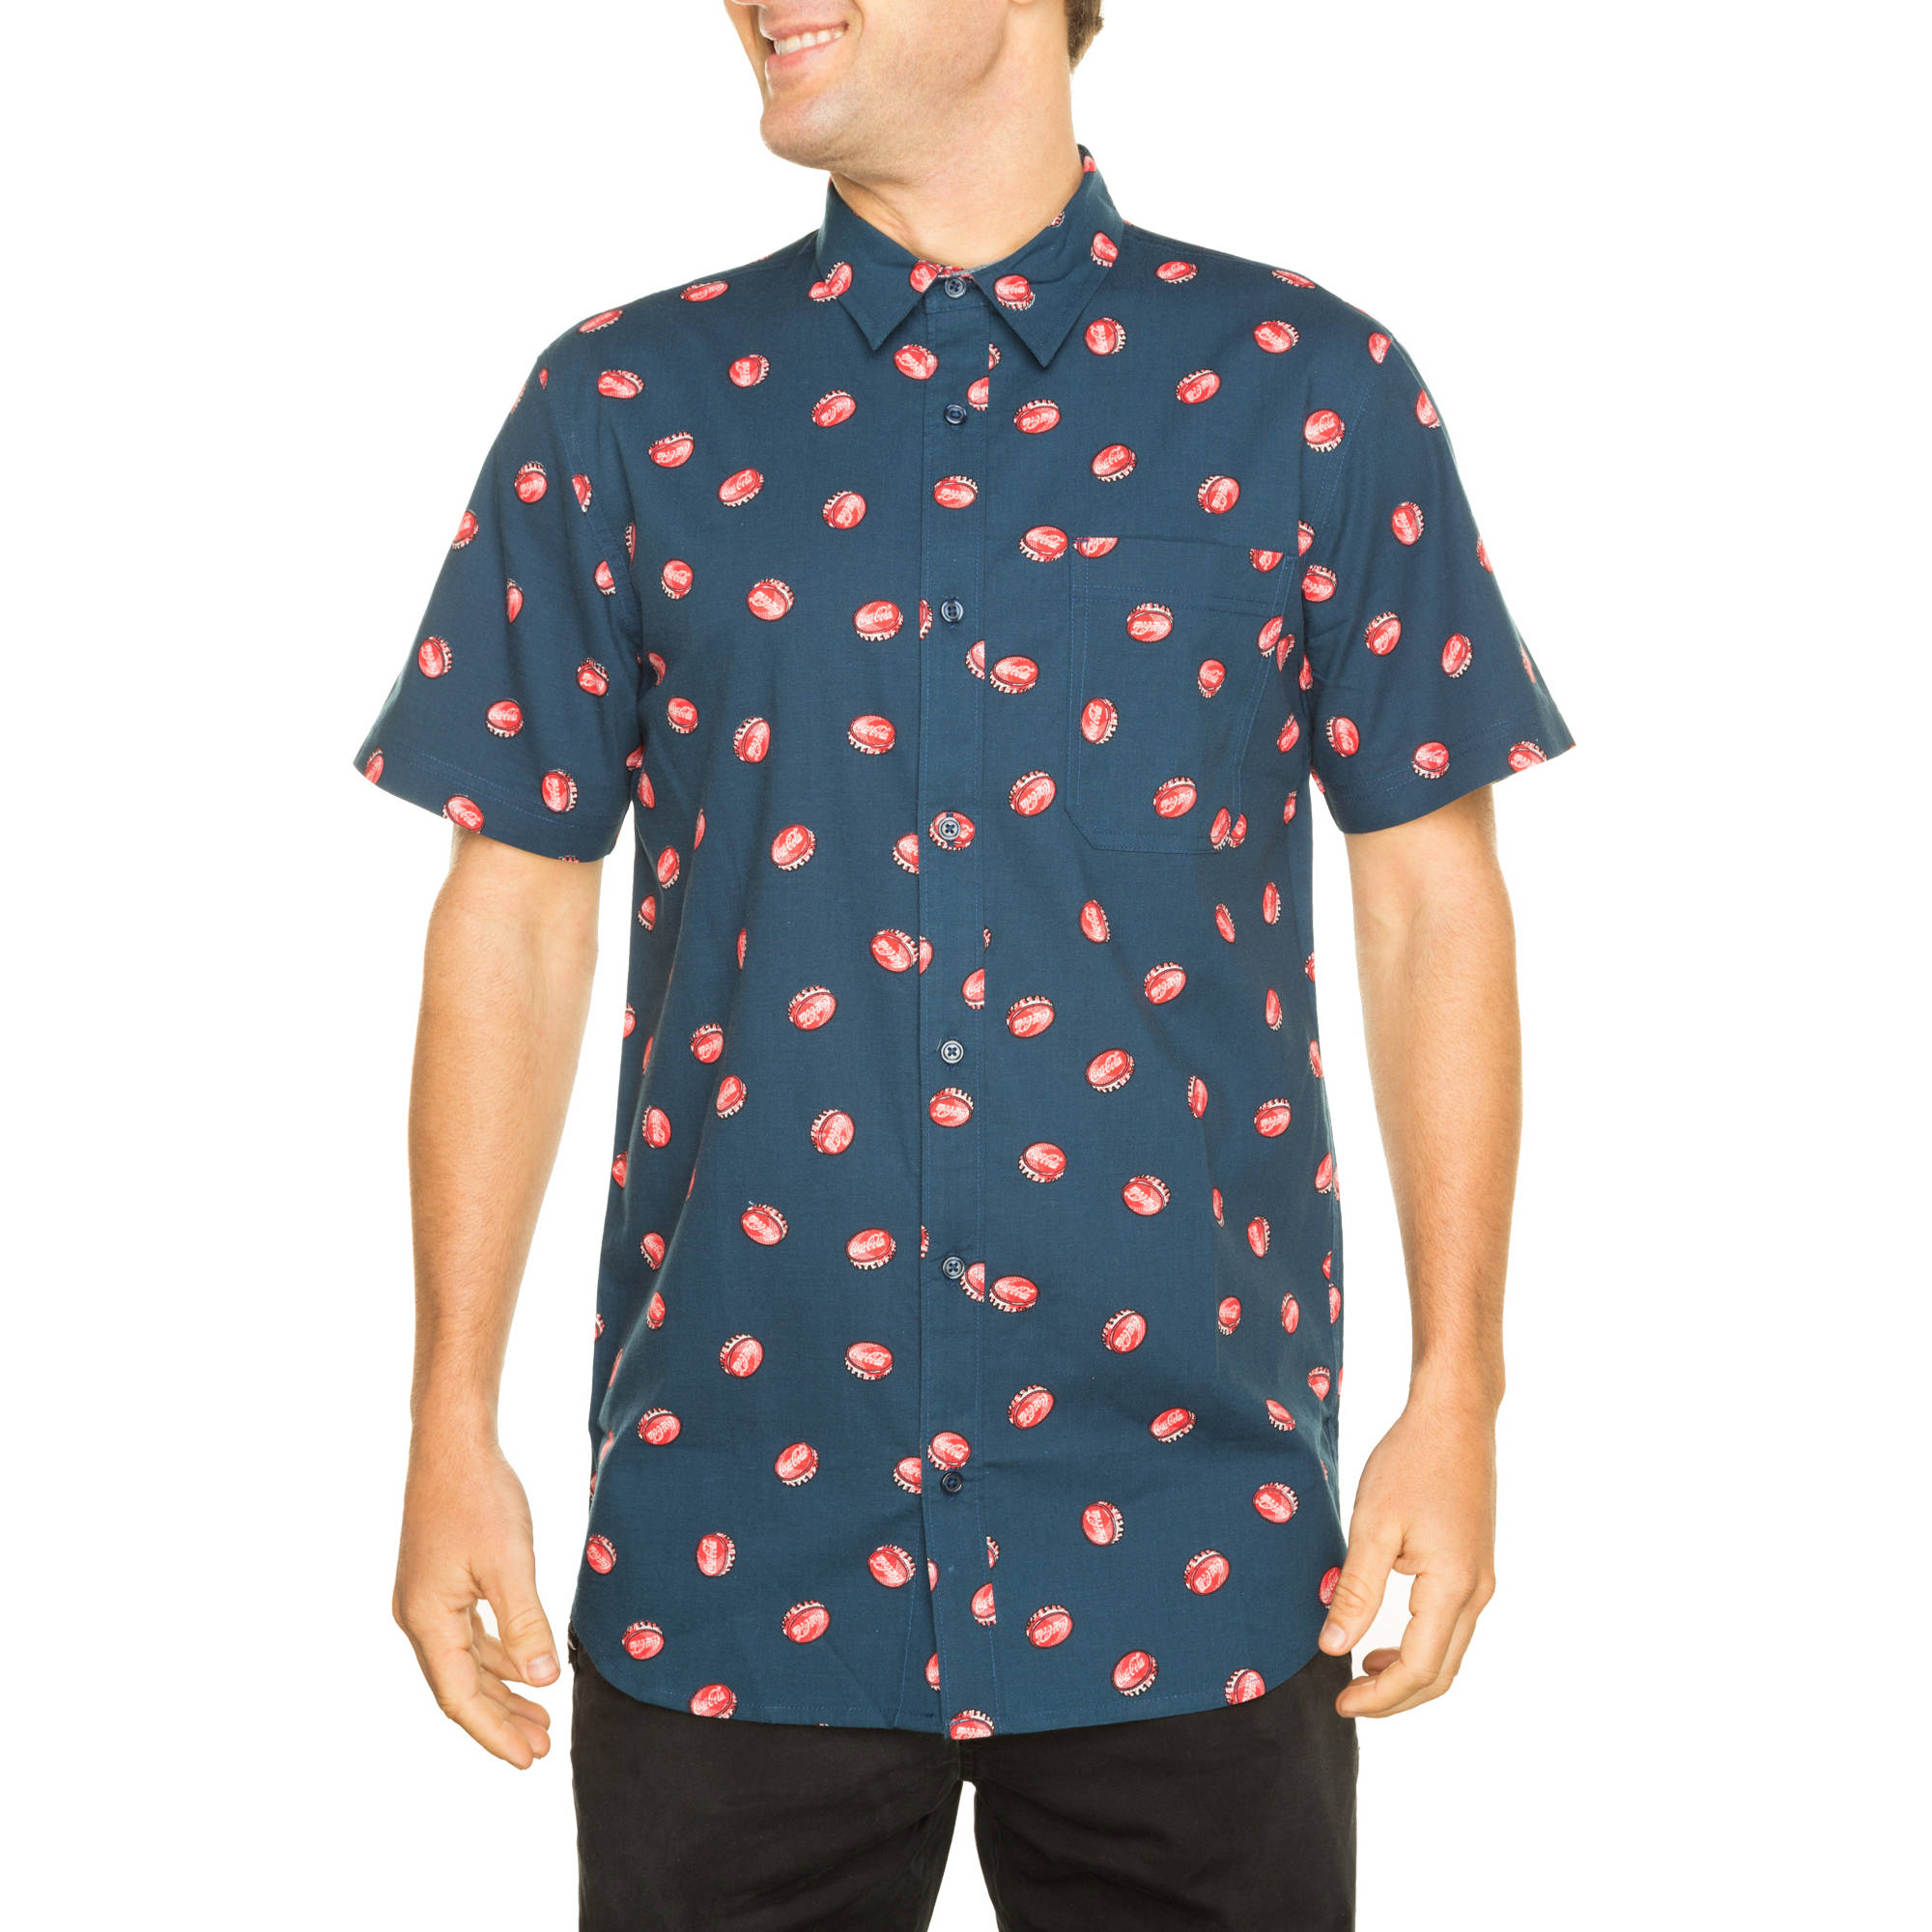 Coca Cola All Over Printed Men's Short Sleeve Woven Shirt